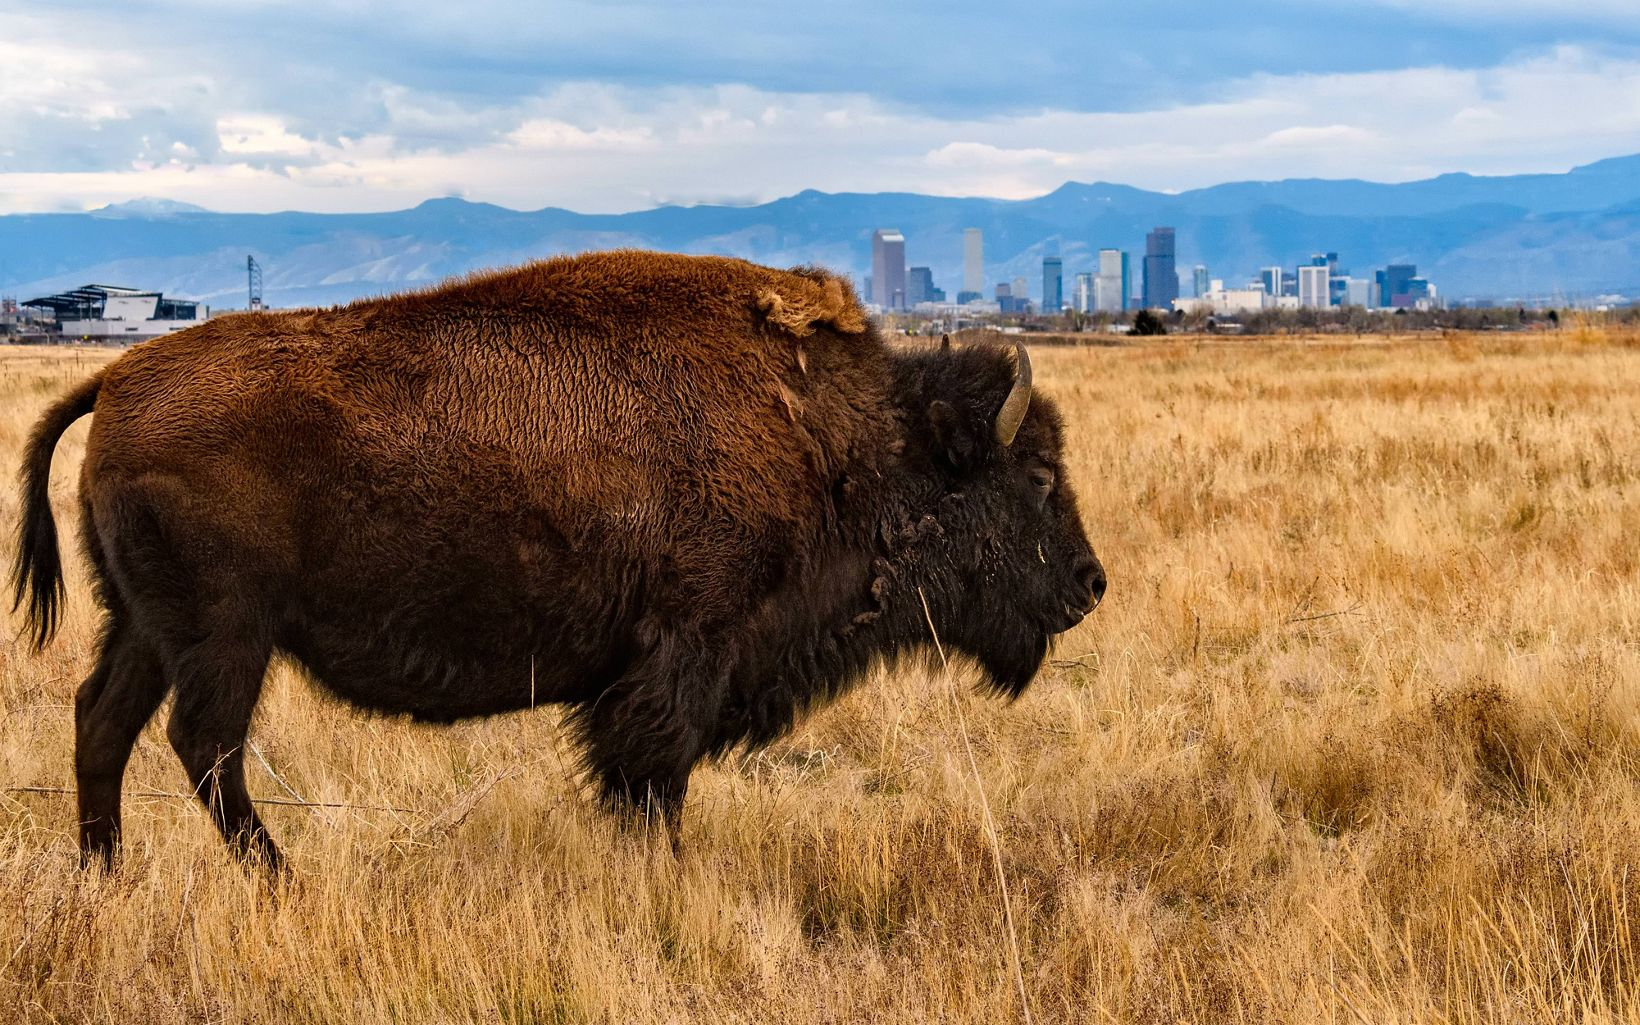 This bison image was taken in the Rocky Mountain Arsenal National Wildlife Refuge in Commerce City, CO, which is a suburb about 15 miles NE of Denver.